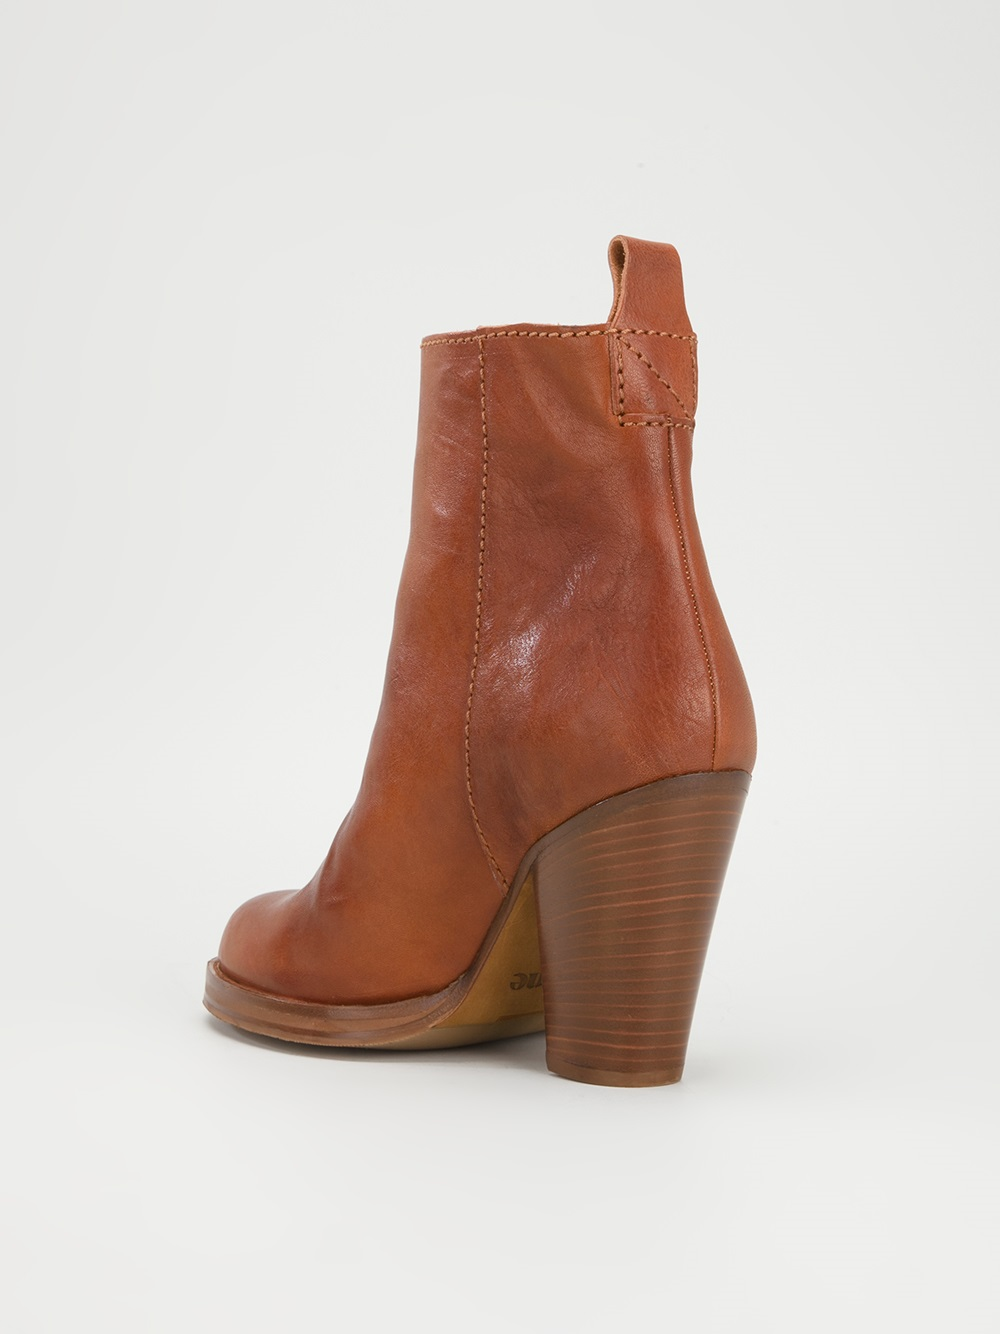 Acne Studios Colt Ankle Boot in Brown